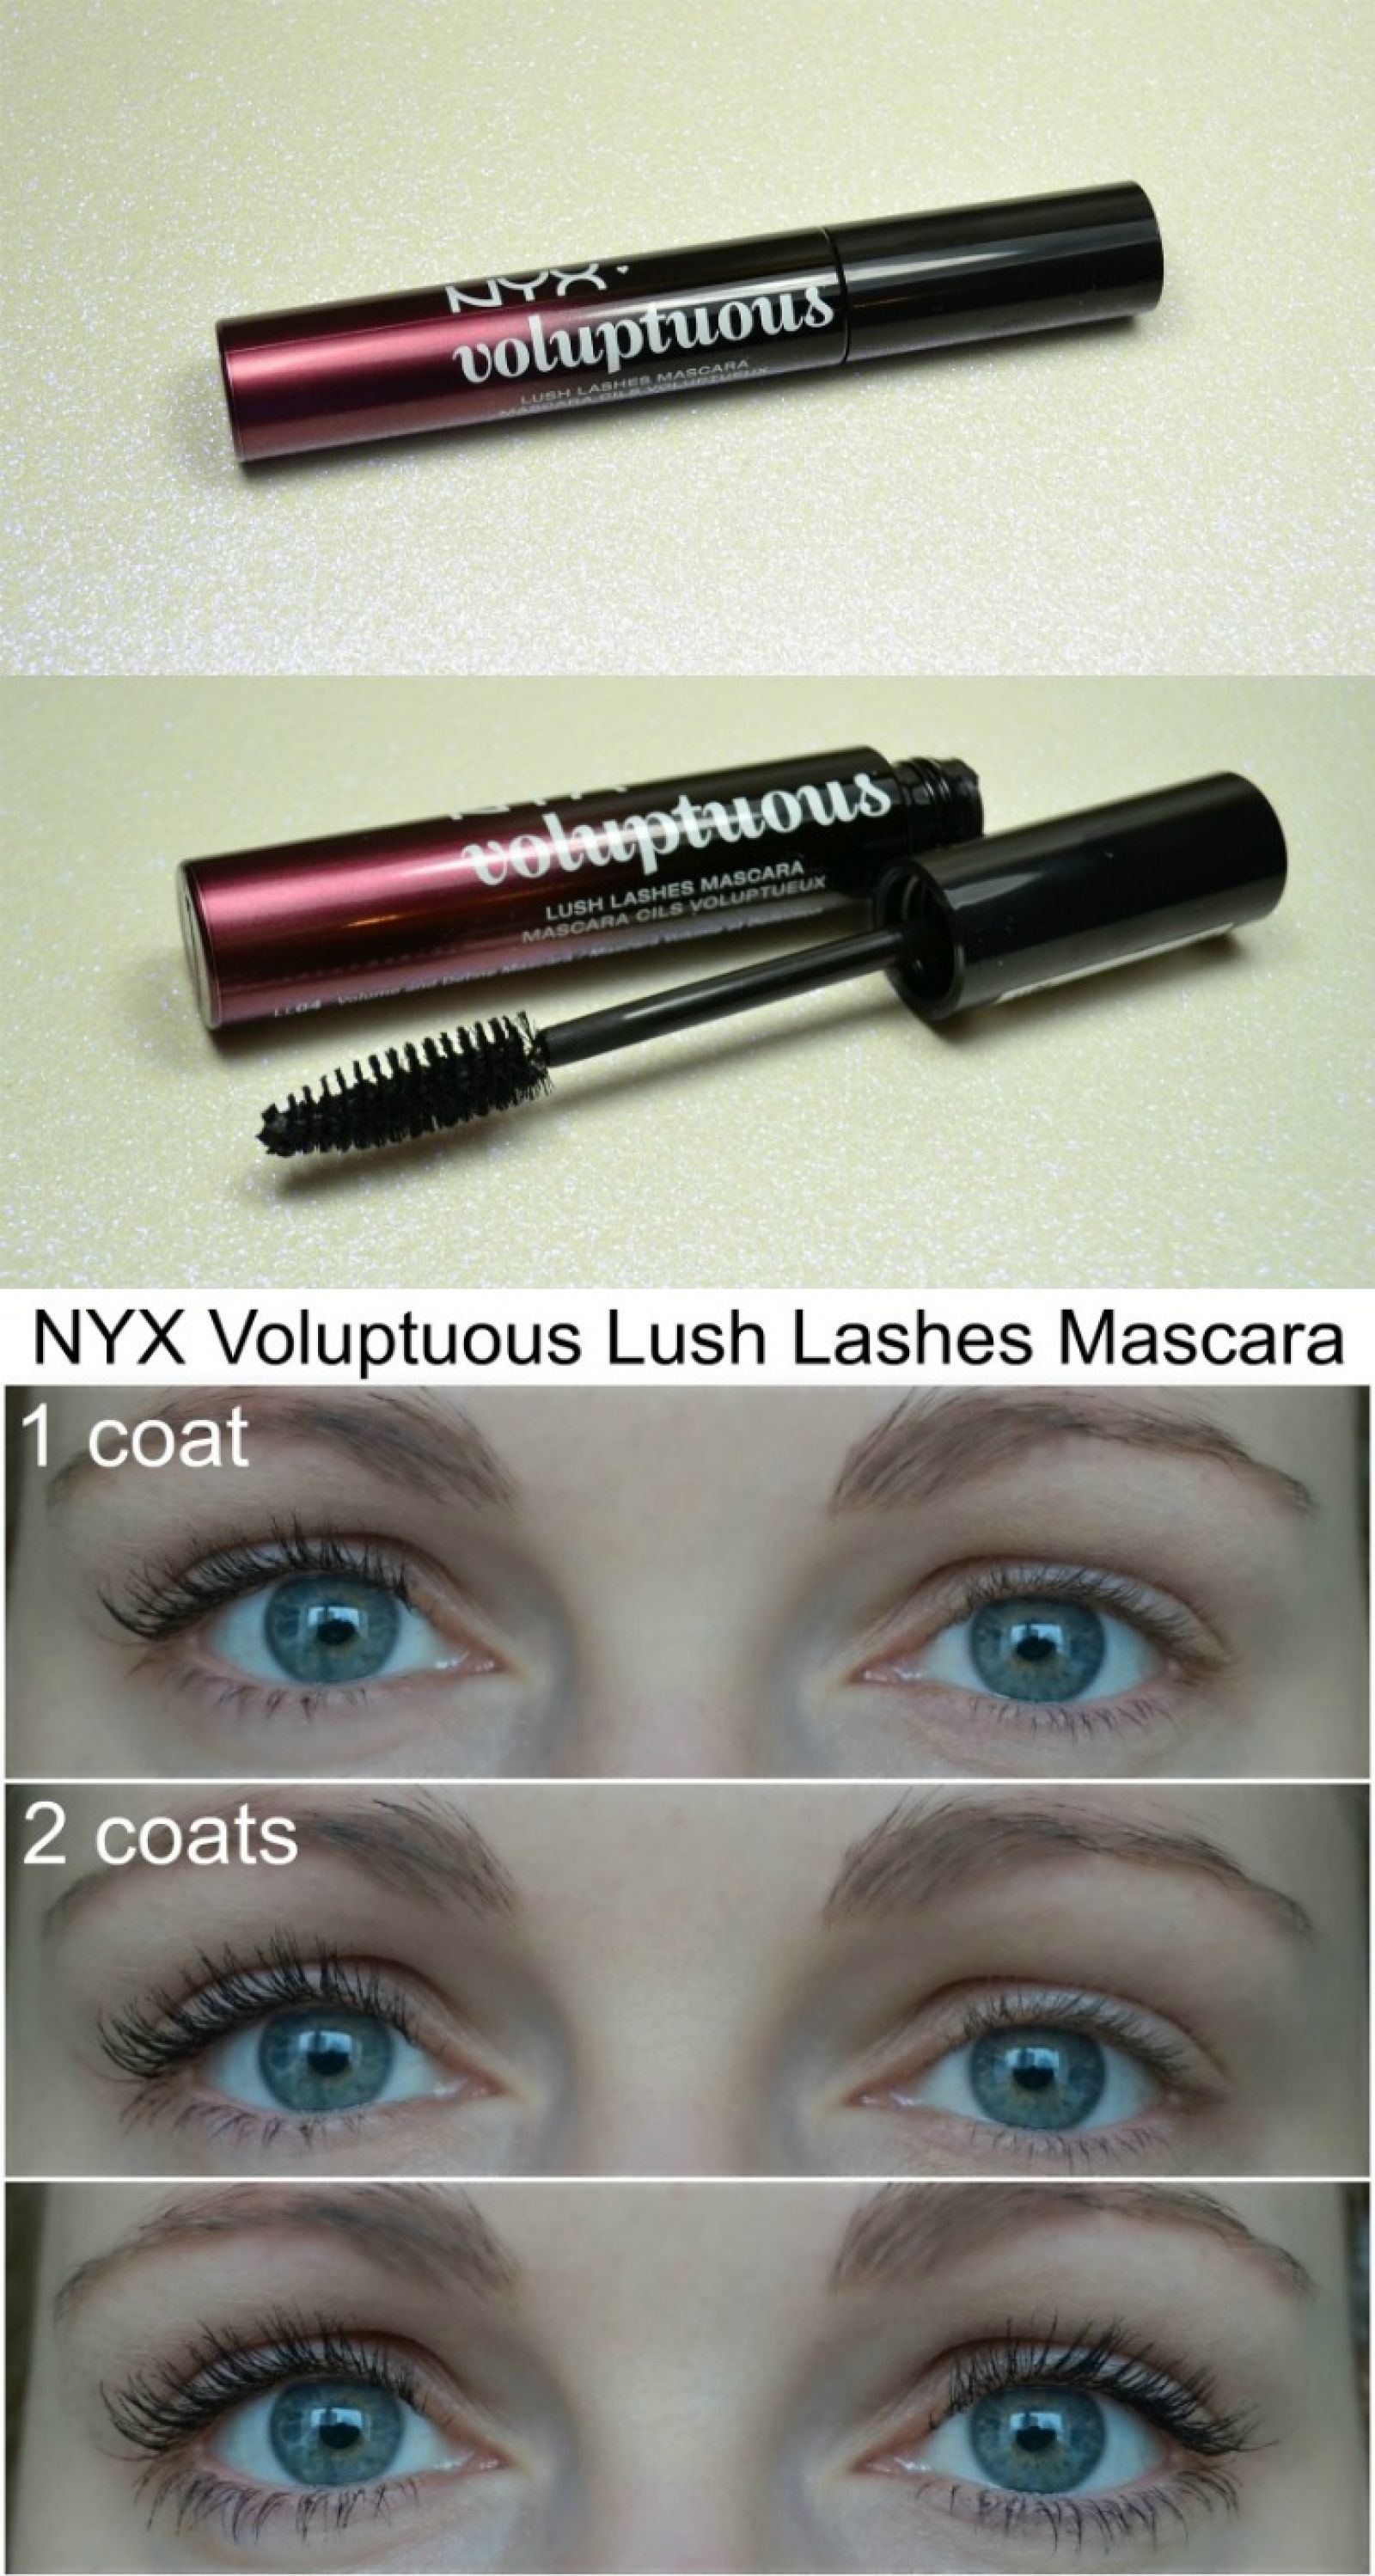 98042d4d67b NYX Lush Lashes Voluptuous Mascara review and how it looks on my lashes.  via @beautybymissl